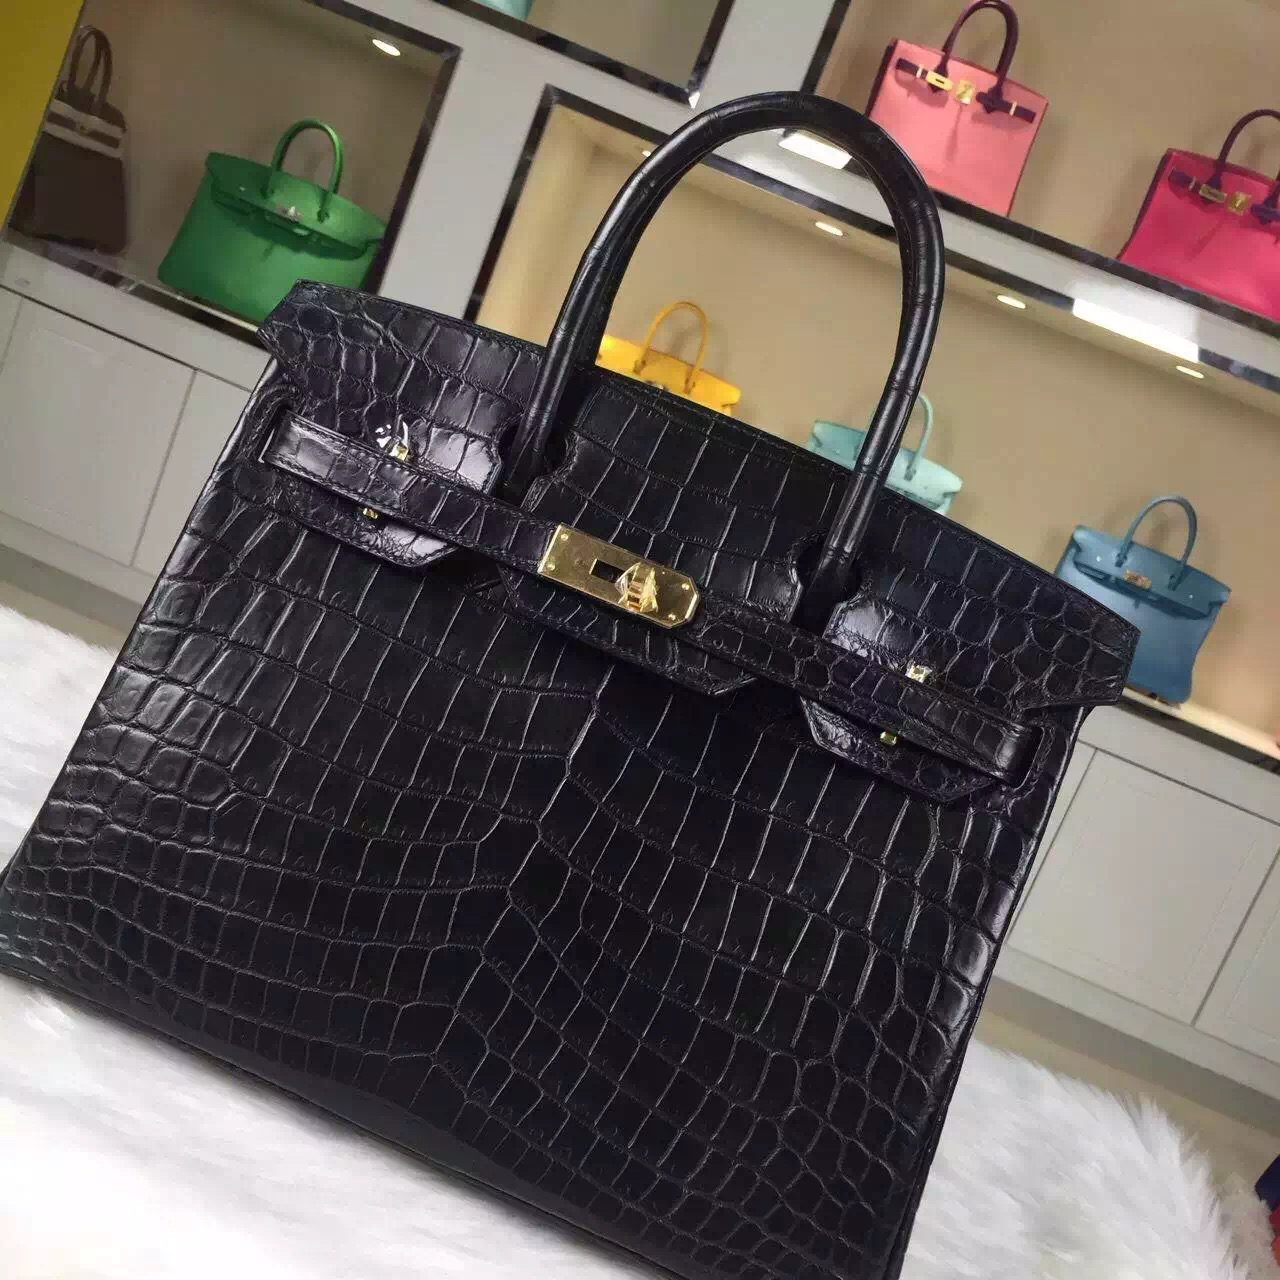 Luxury Hermes Birkin Bag 30CM CK89 Black Crocodile Leather Fashion Women's Handbag